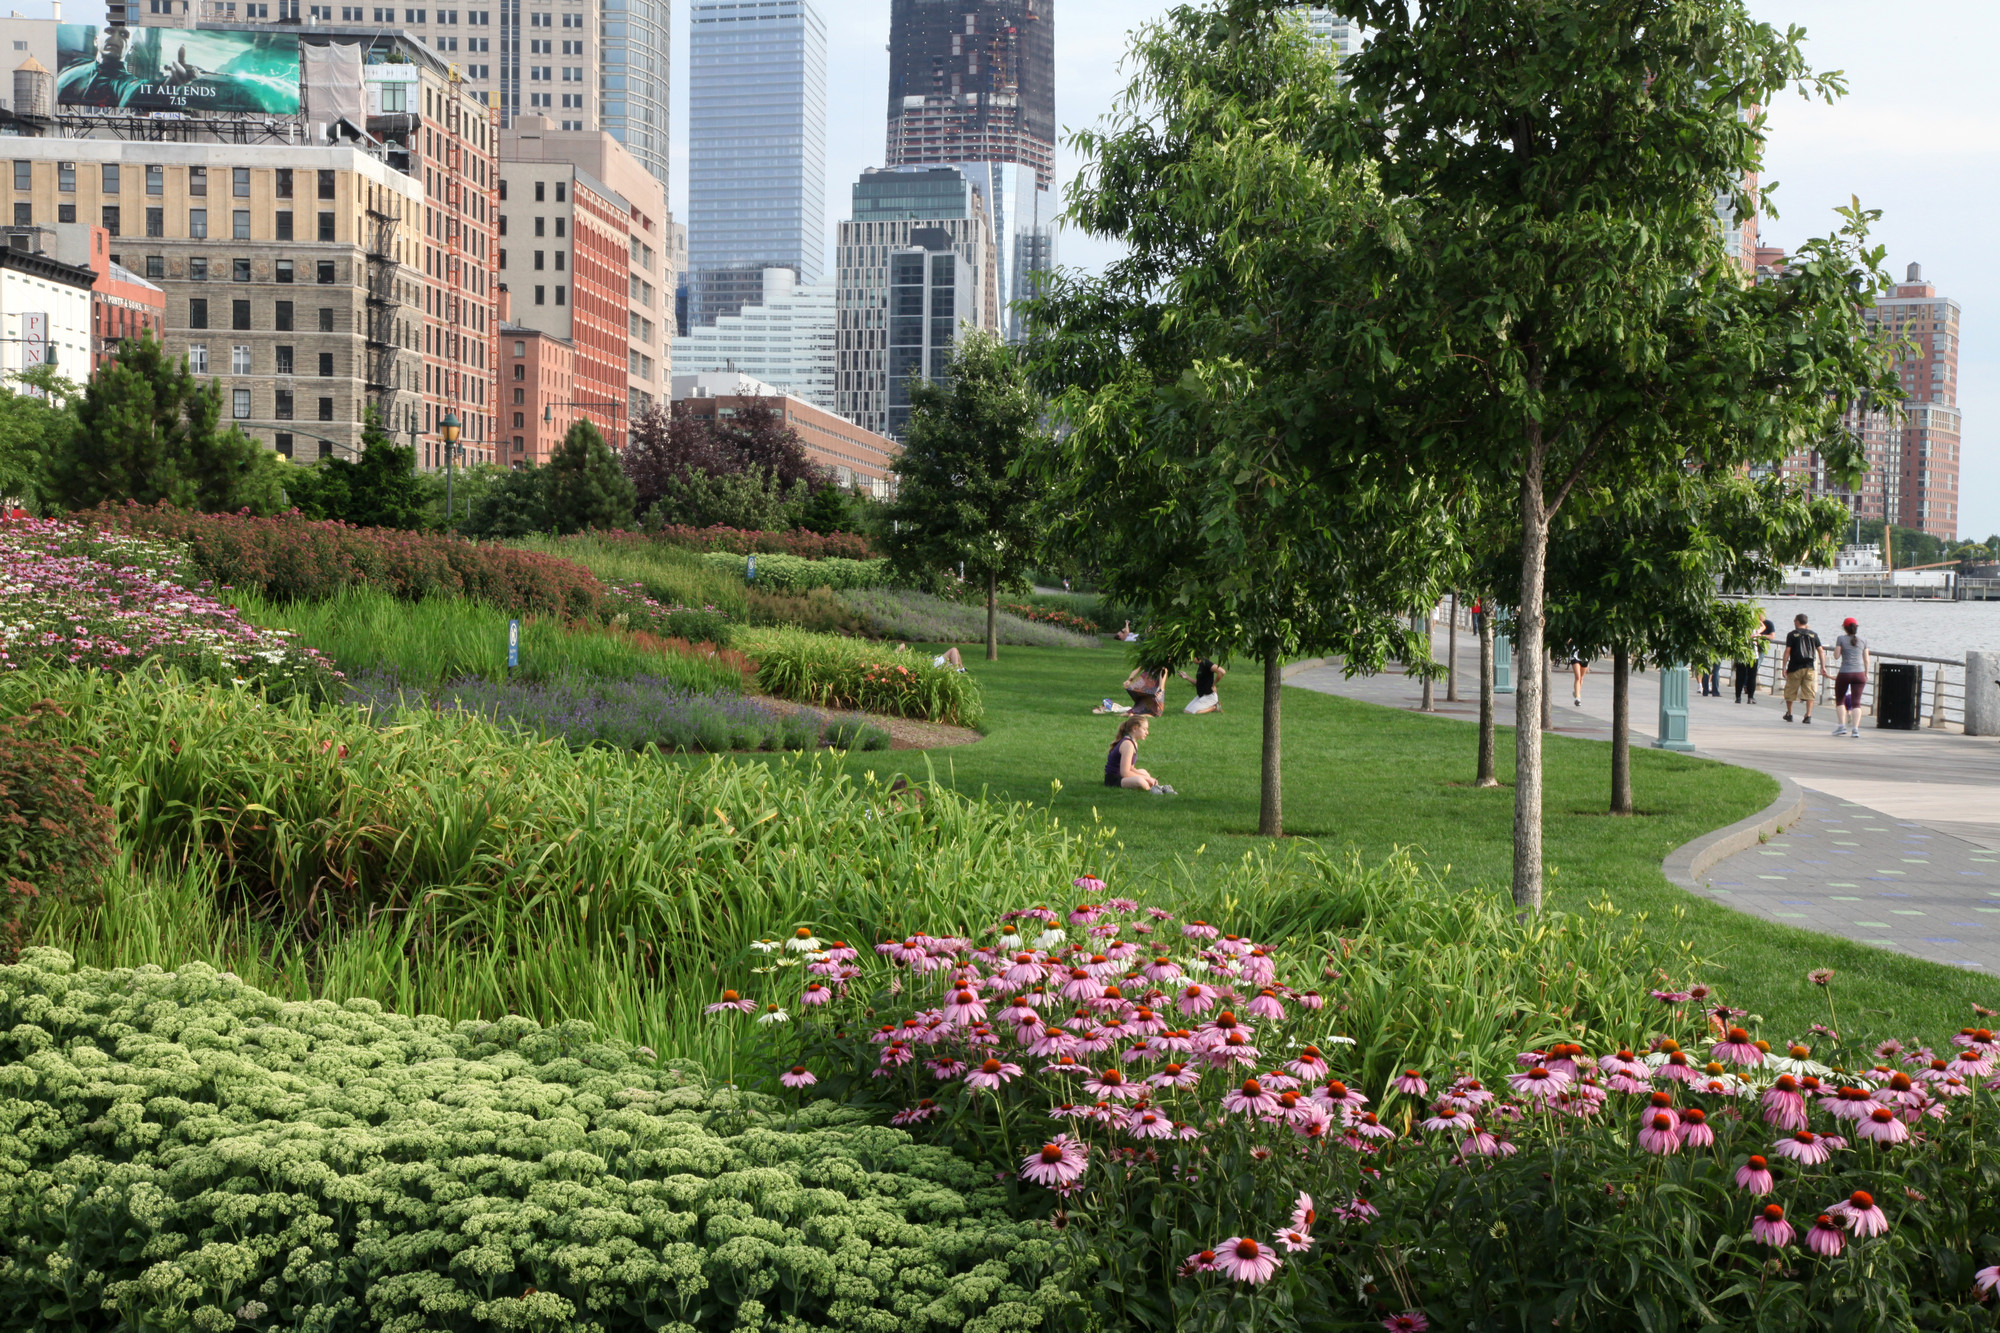 Landscape design in our time of climate change archdaily for Mathews nielsen landscape architects